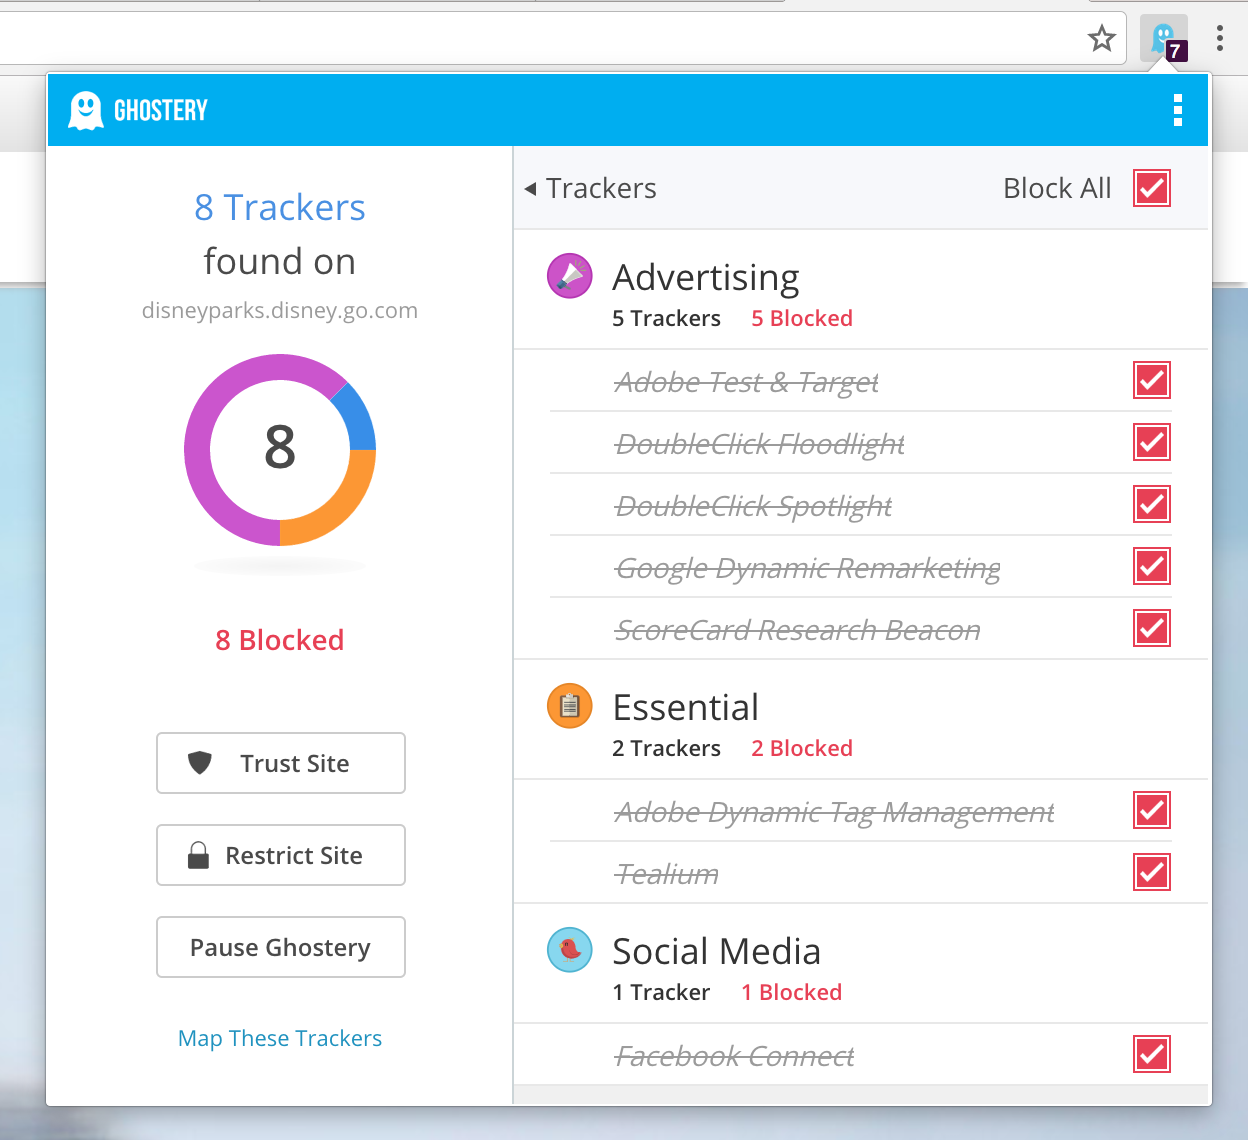 Updated design for Ghostery 7.0